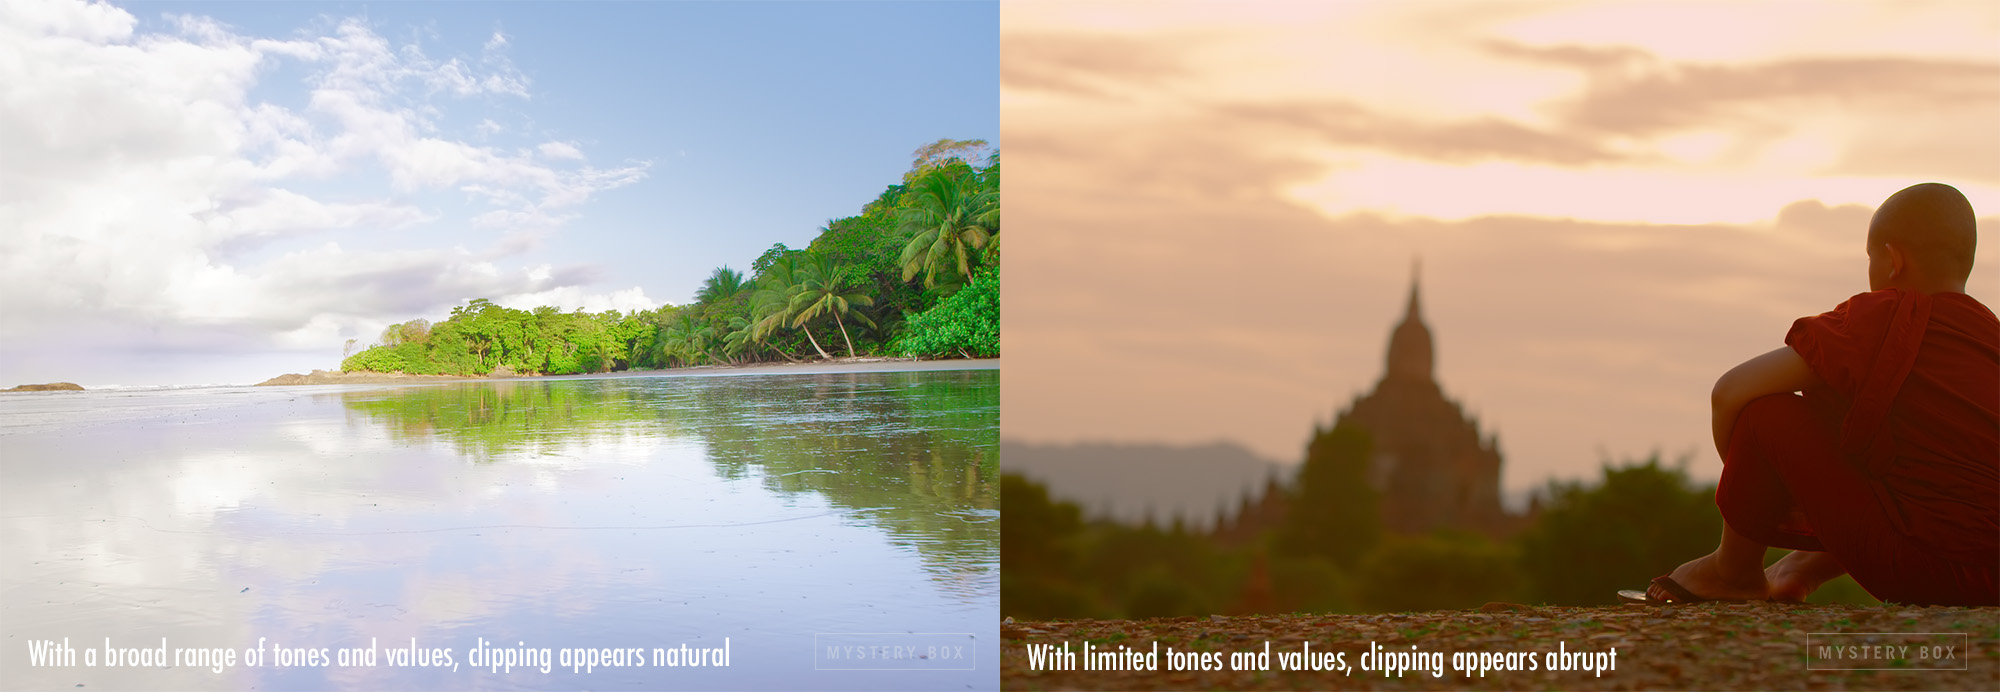 Clipping in an image with wide range of values and tones vs clipping in image with limited range of values and tones